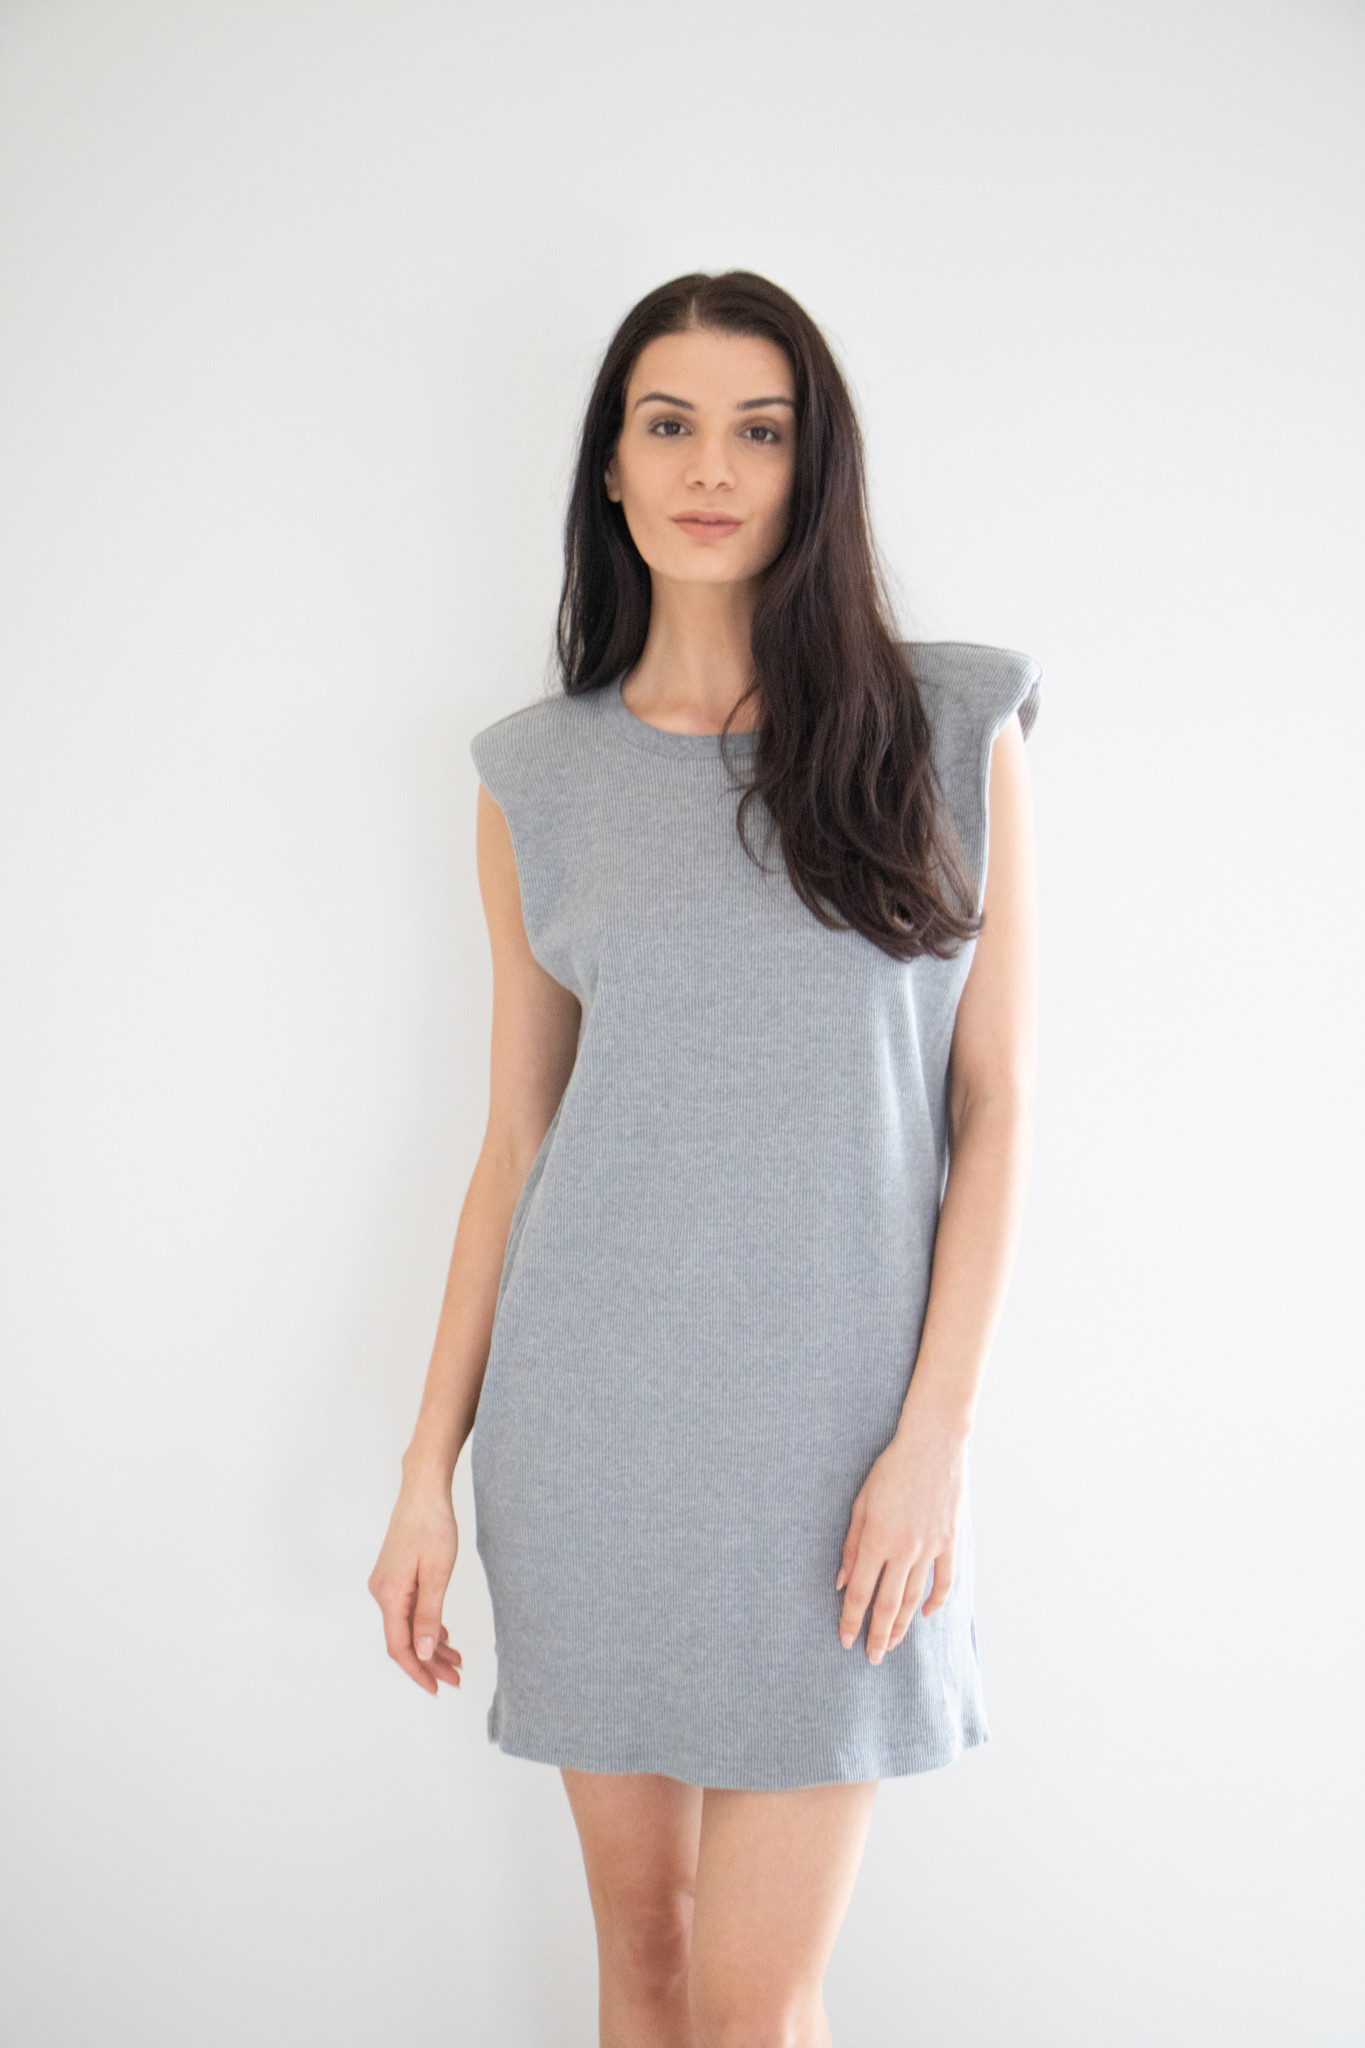 This waffle knit midi dress is made from a mid-weight fabric, with padded shoulders to create a structured, clearly defined silhouette. Comes in two classic colours, Heather Grey and heather grey. Pairs perfectly with a casual jacket and sneakers.